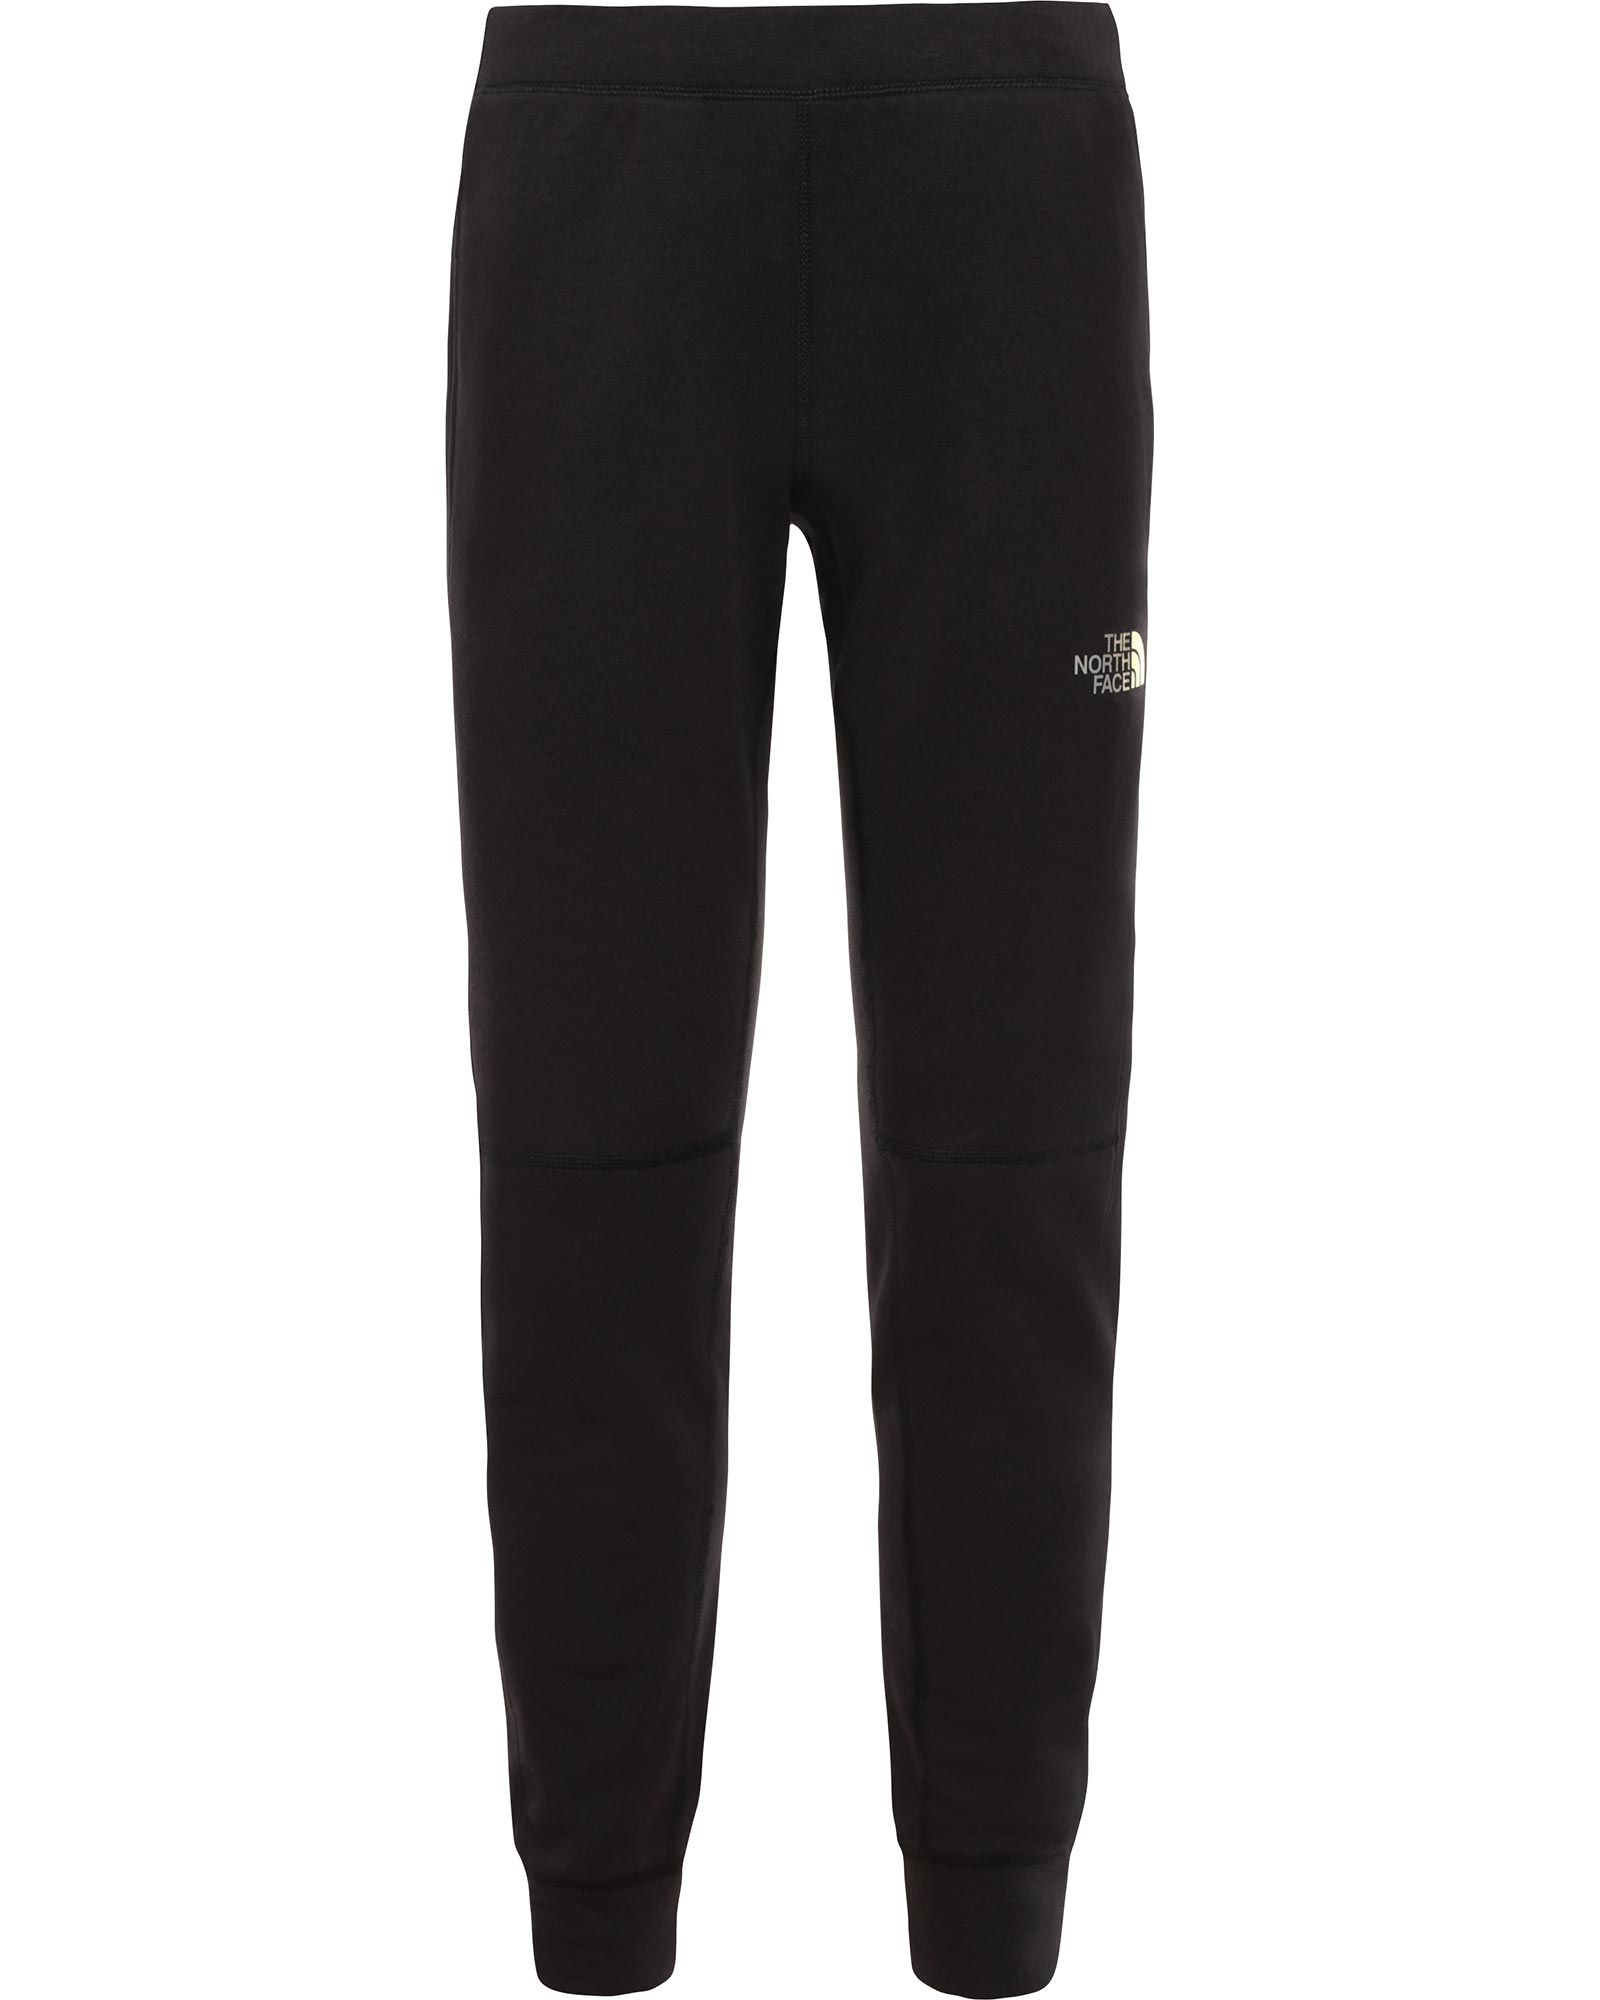 Product image of The North Face Slacker Boys' Cuffed Pants XL